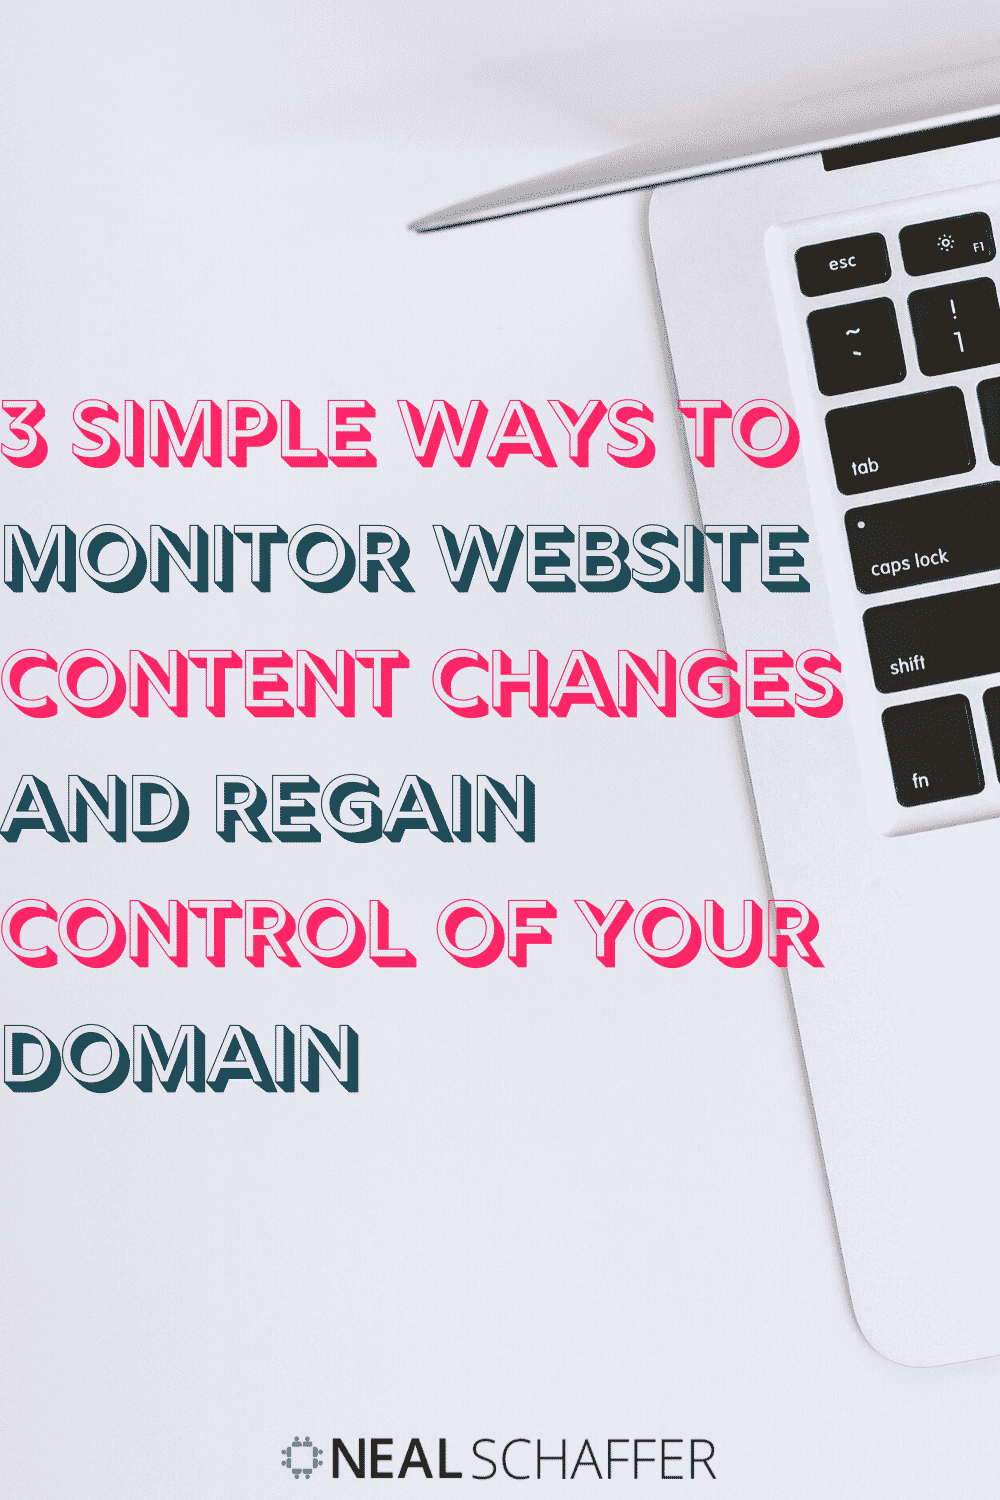 Do you need to monitor website content changes to ensure the integrity of your website? You've come to the right place: Here are 3 simple ways to do so.